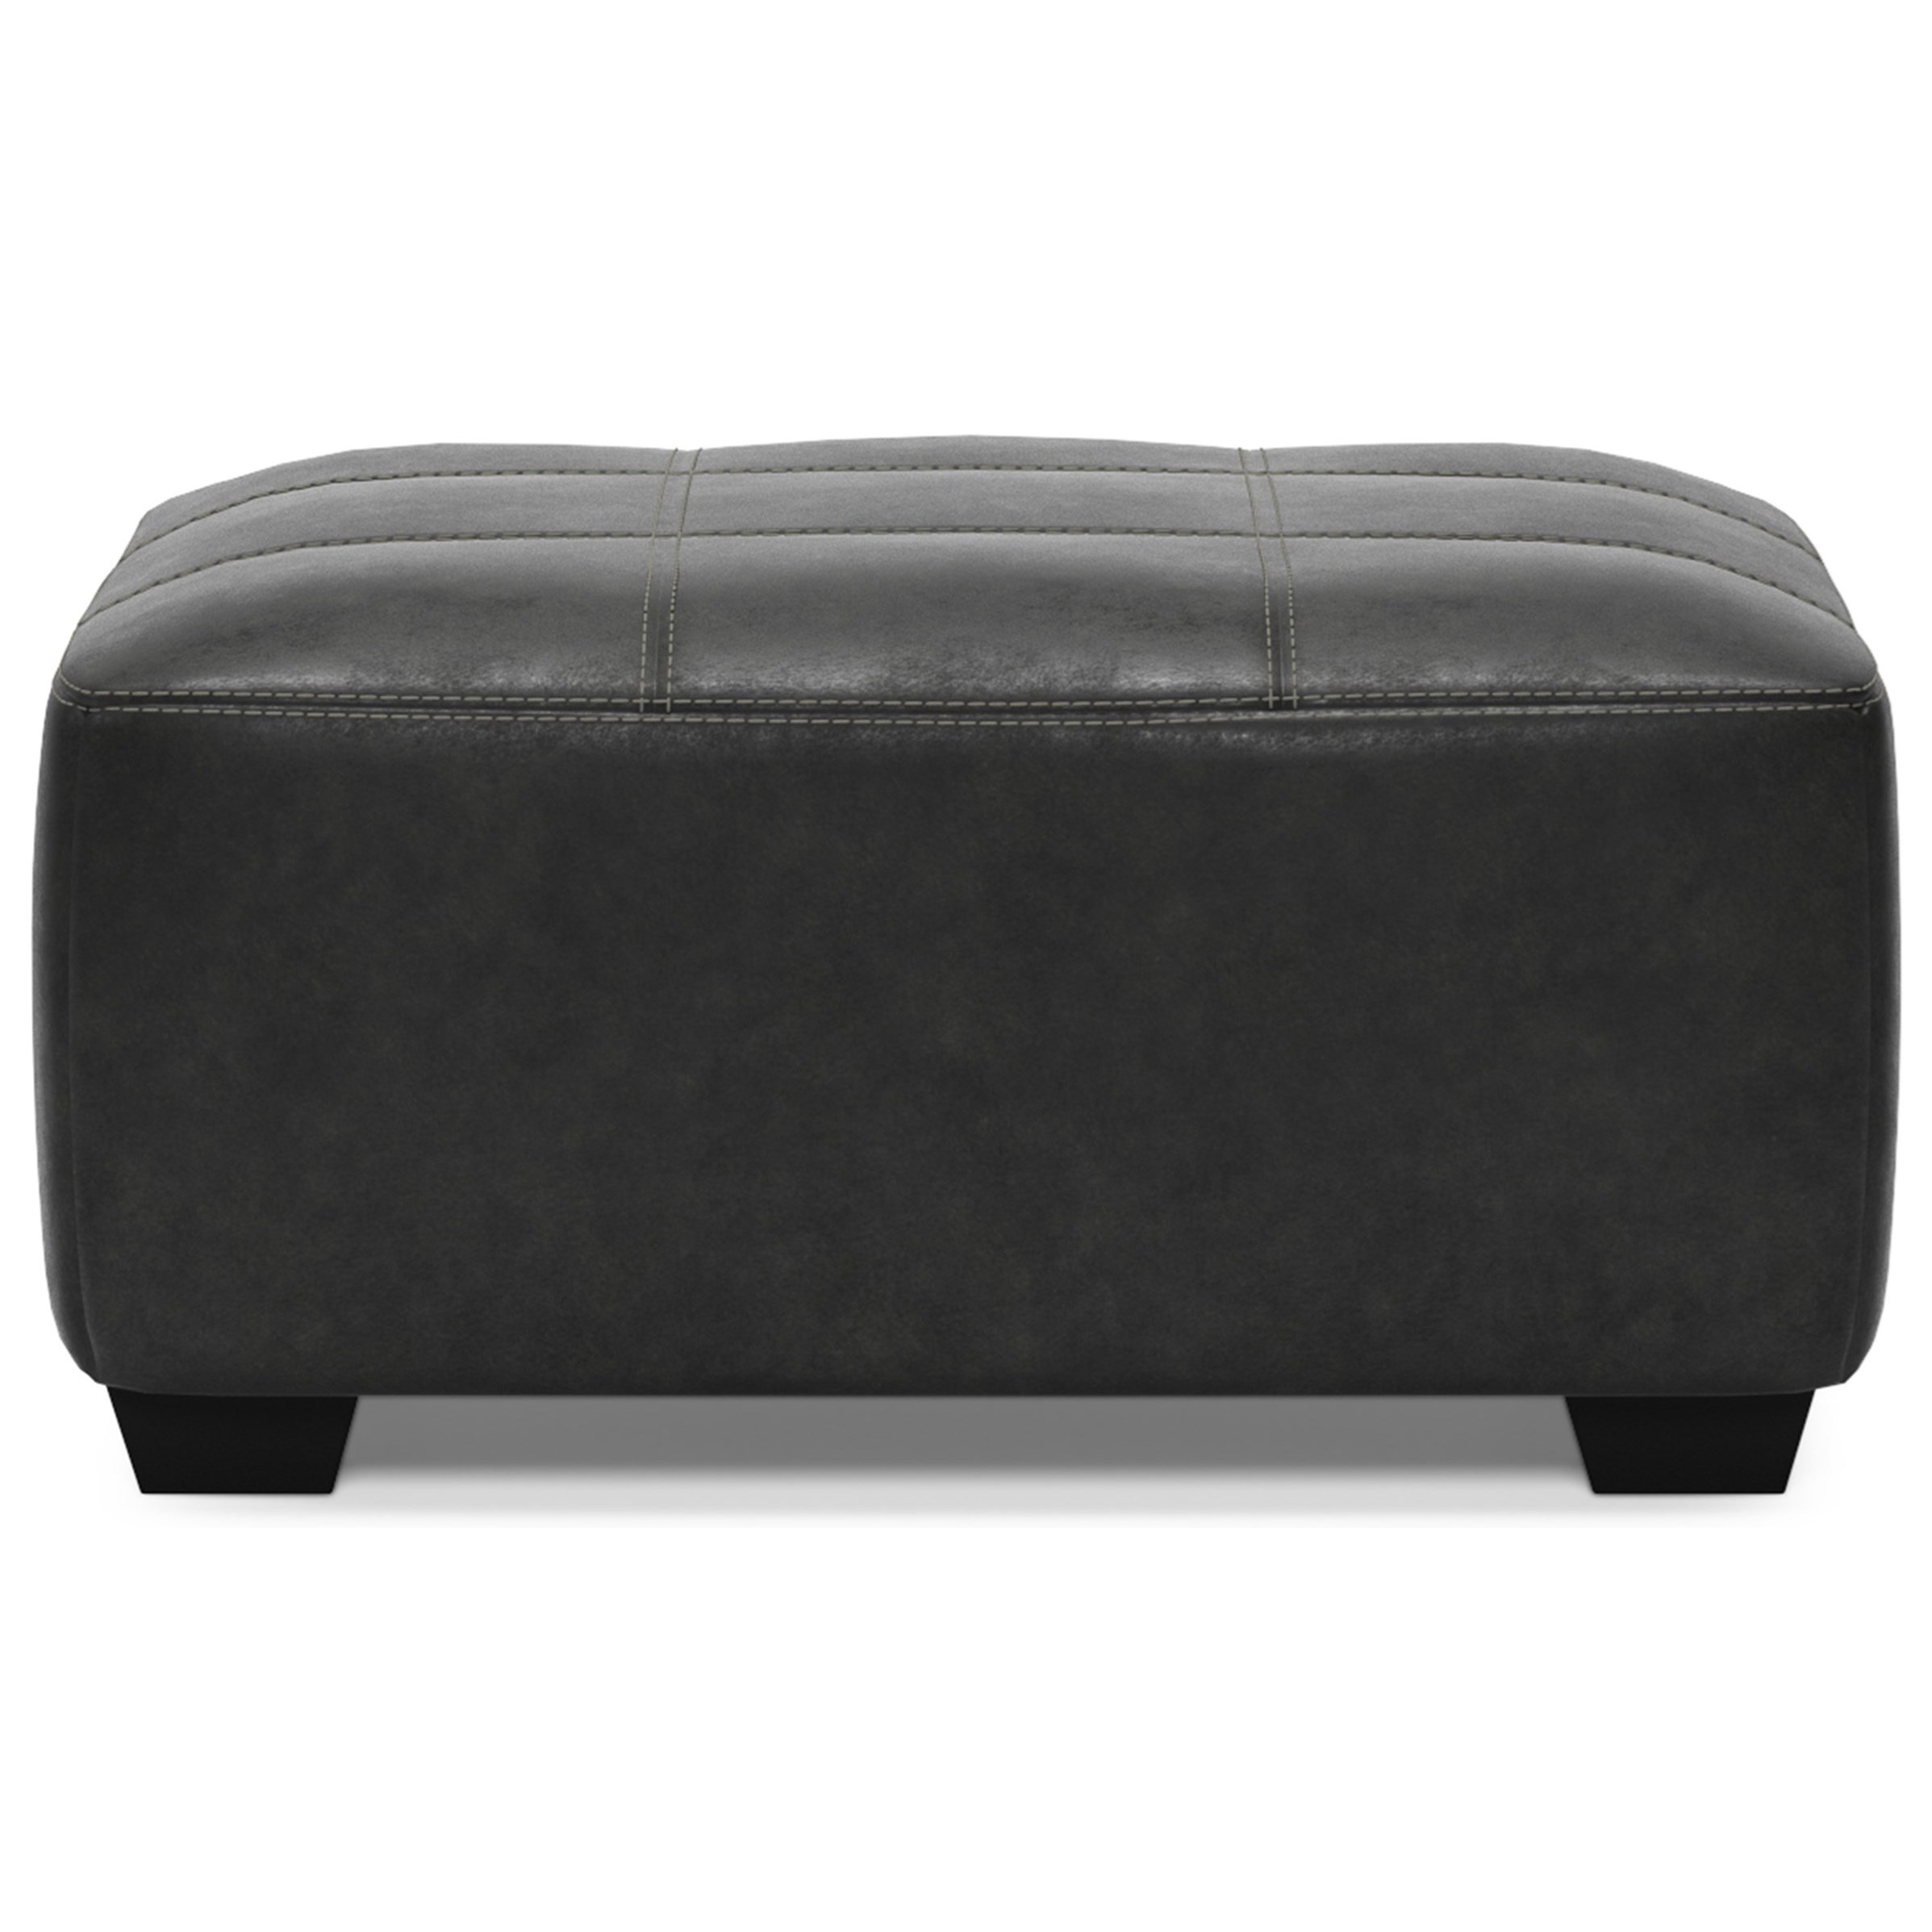 Bilgray Oversized Accent Ottoman by Signature Design by Ashley at Household Furniture